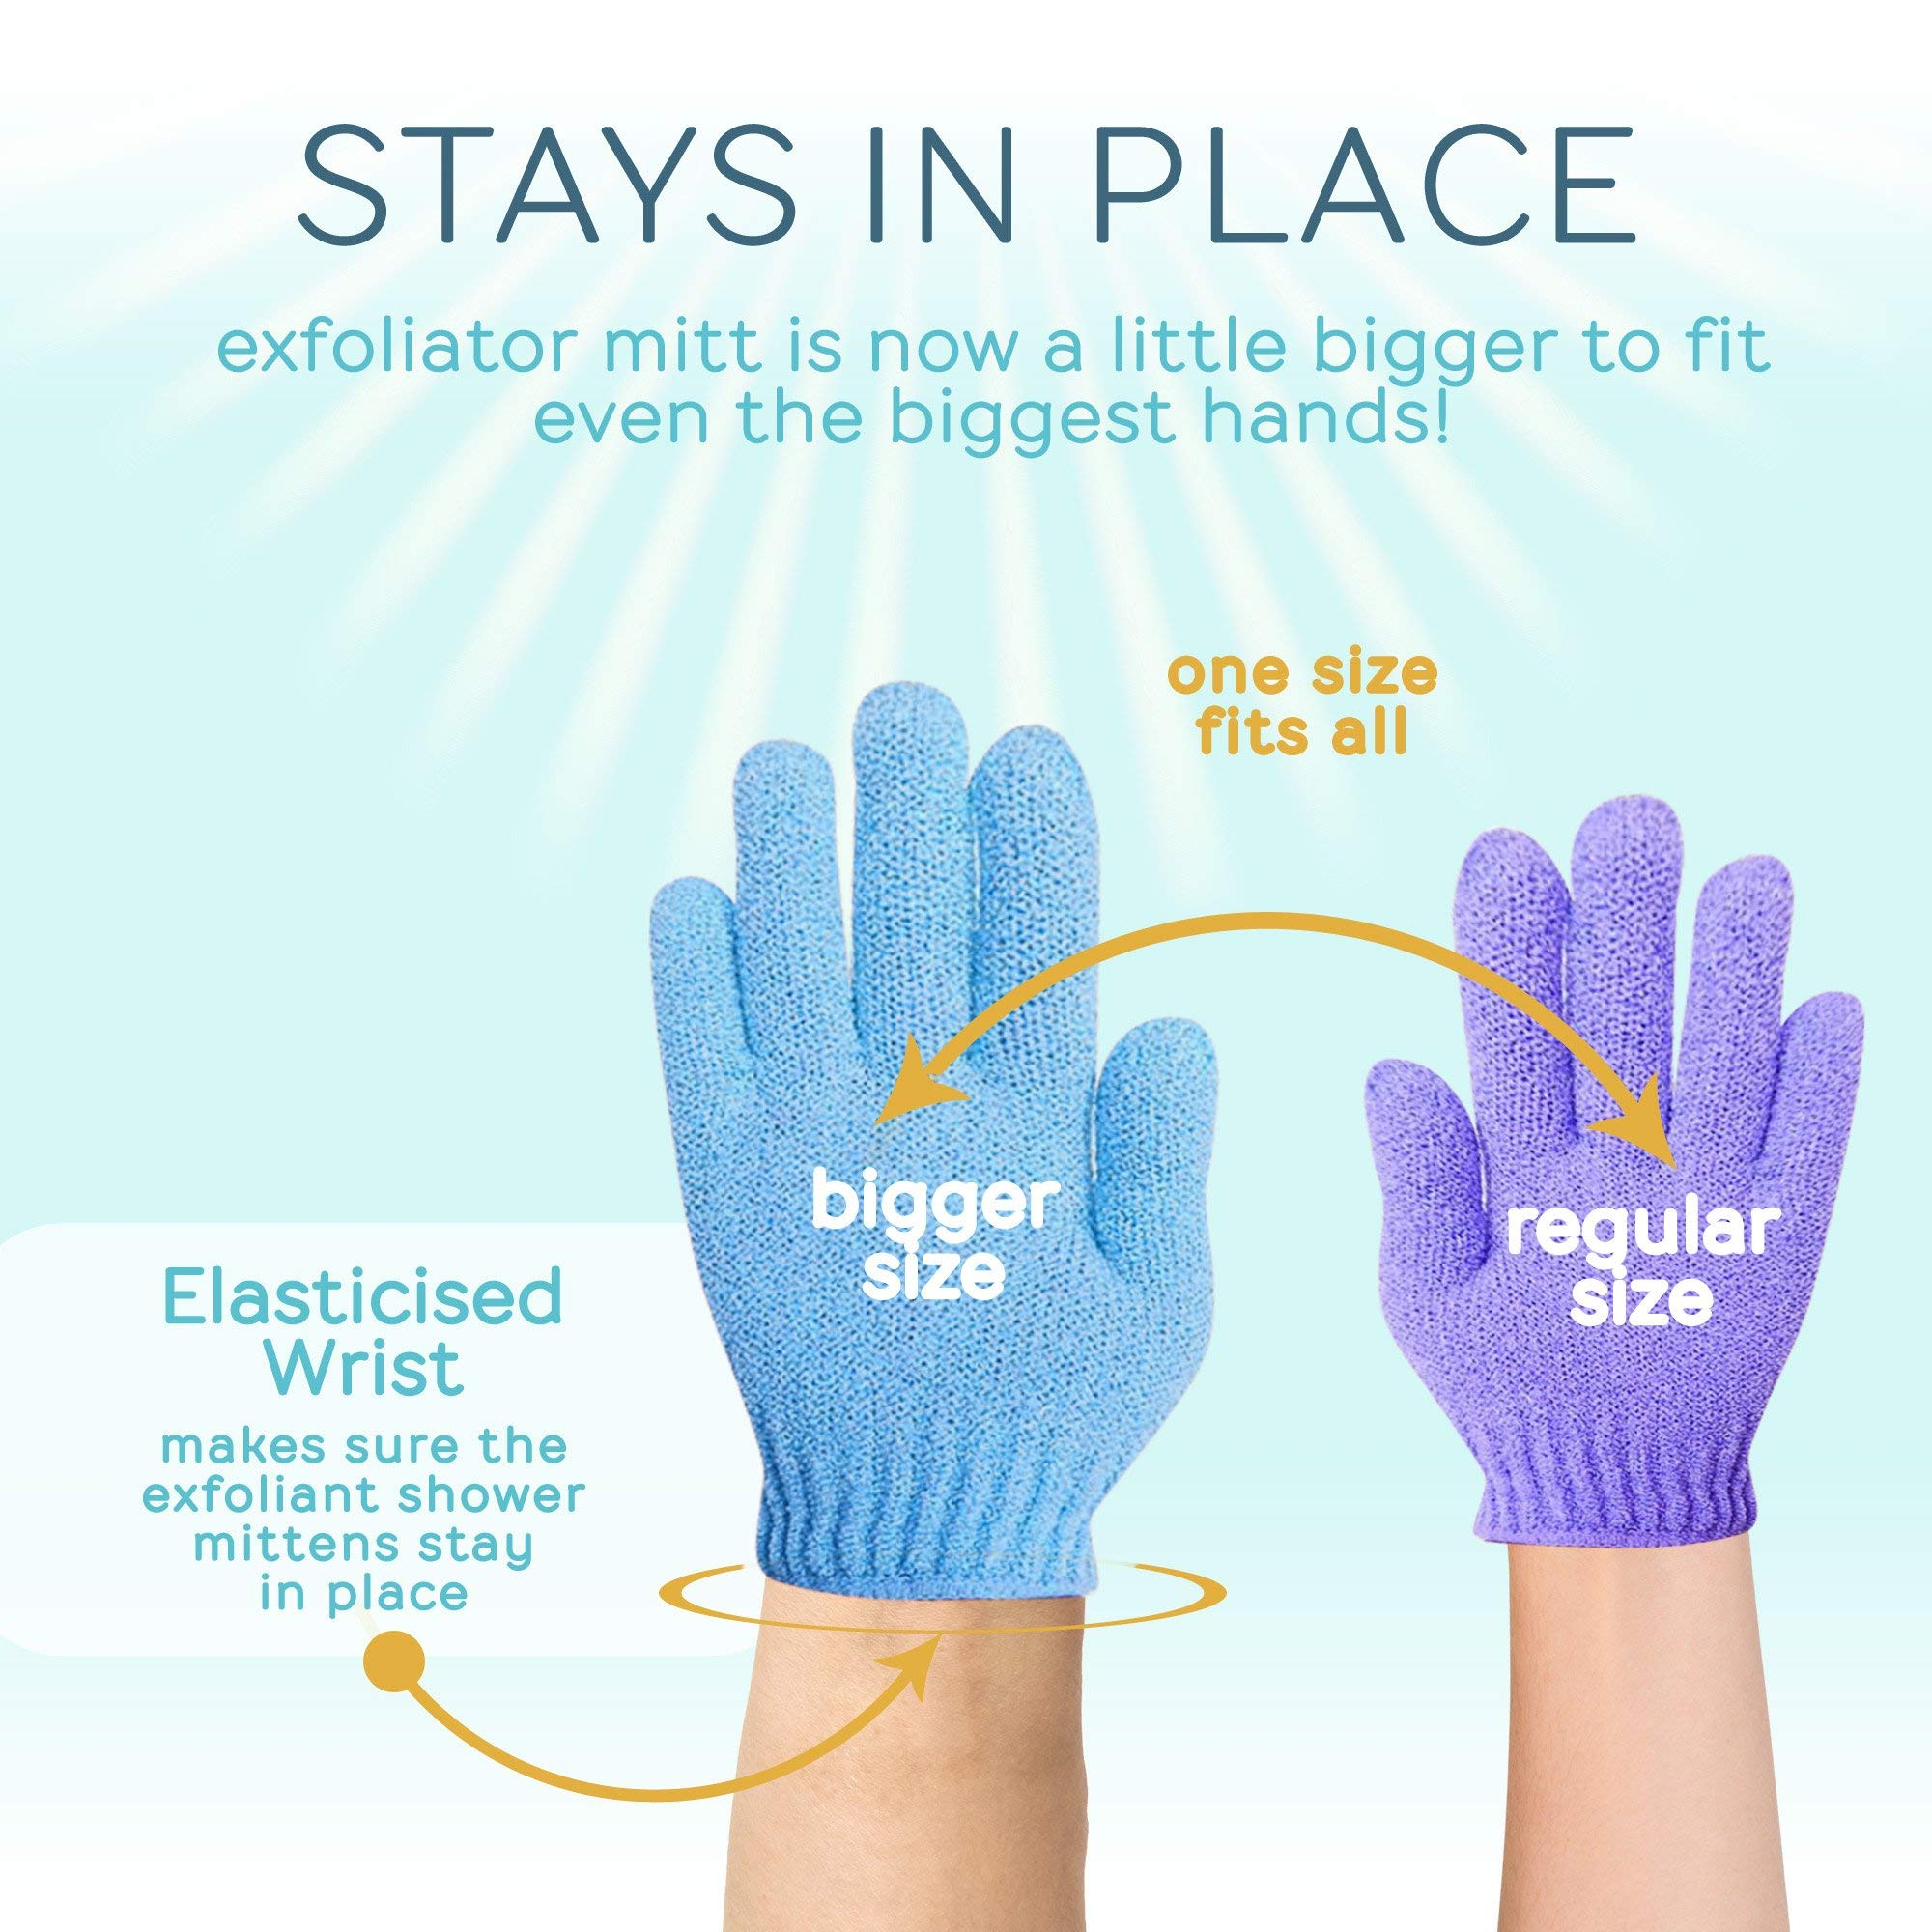 SmitCo LLC Exfoliating Gloves - 4 Pairs Full Body Scrub - Shower or Bath Spa Exfoliation Accessories For Men and Women - Scrubs Away Dead Cells For Soft Skin and Improves Blood Circulation by SMITCO (Image #4)